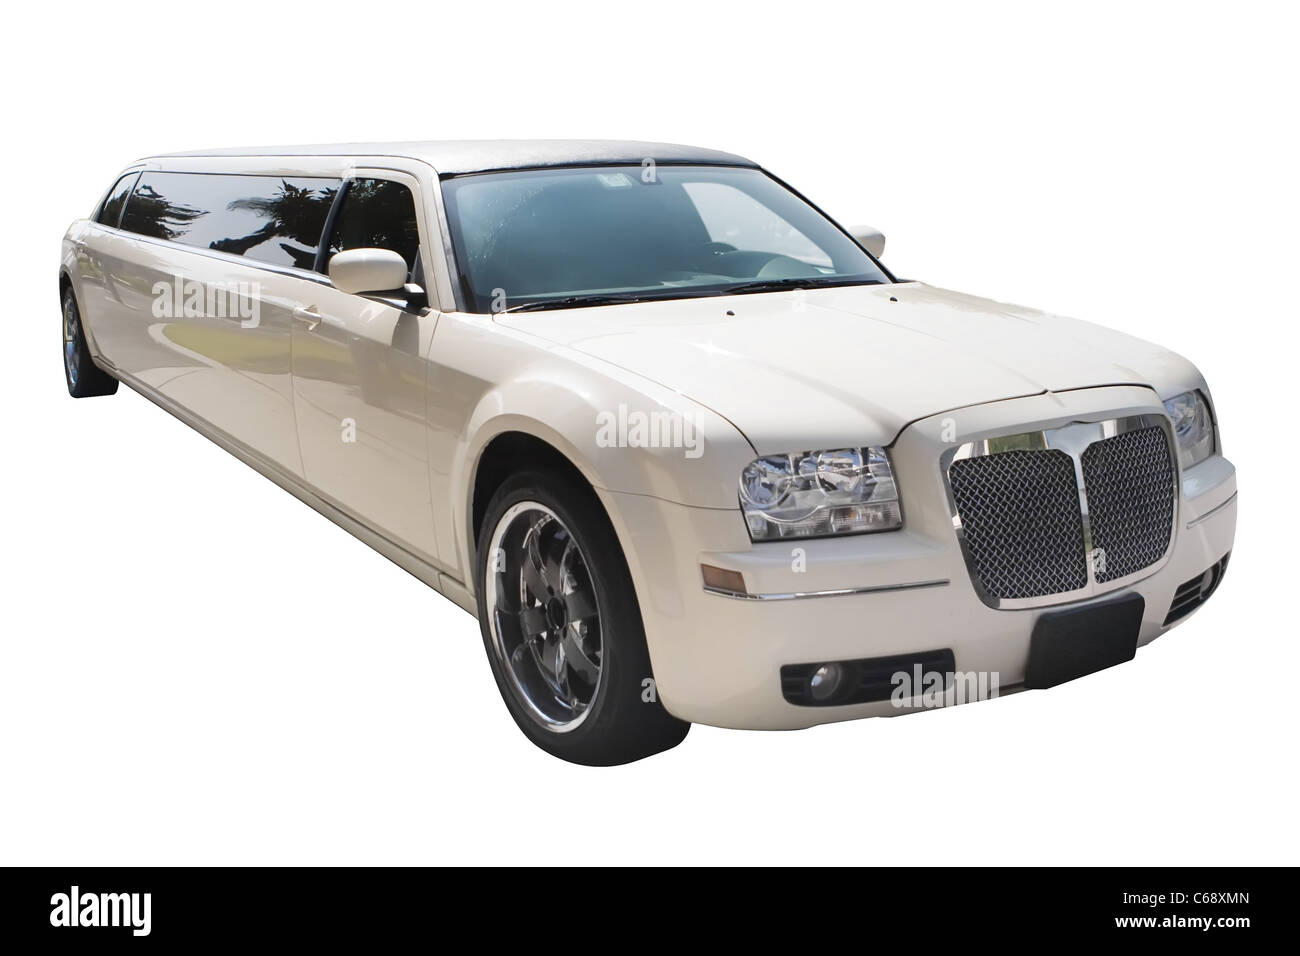 A white limousine without any background - Stock Image